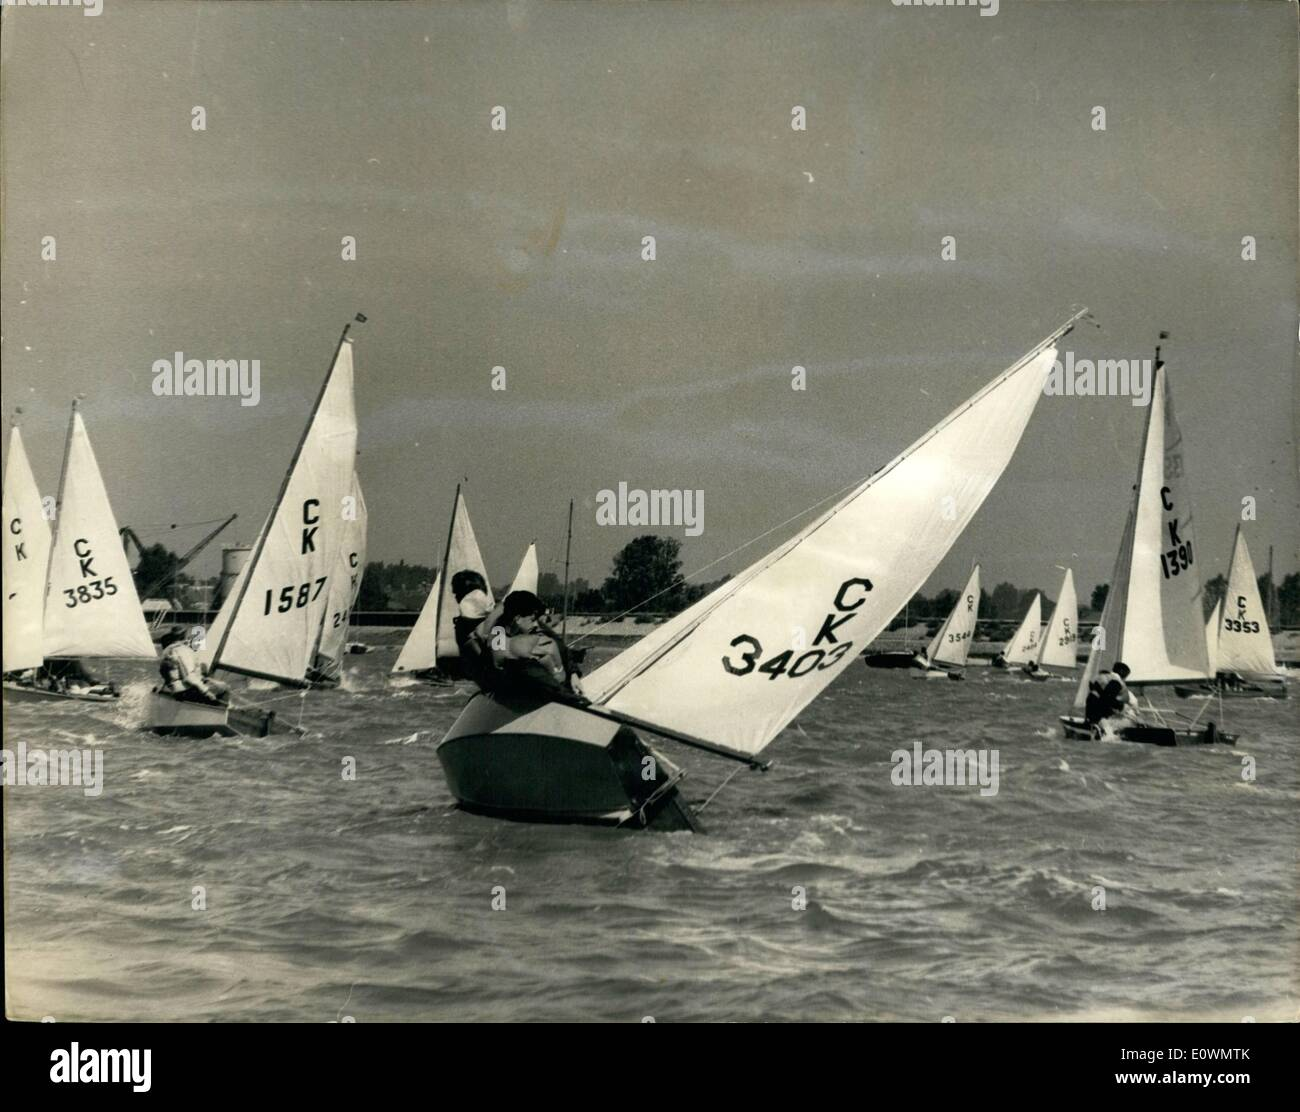 Aug. 08, 1963 - Cadet Week Opens: The fourteenth Annual International Cadet Class dinghy week of races opened today at Burnham-Crouch. The Cadets can only be sailed by persons under 19 years of age. Photo shows It's ''loan well out'' as the Cadet Class boats round a marker buoy during their race. - Stock Image